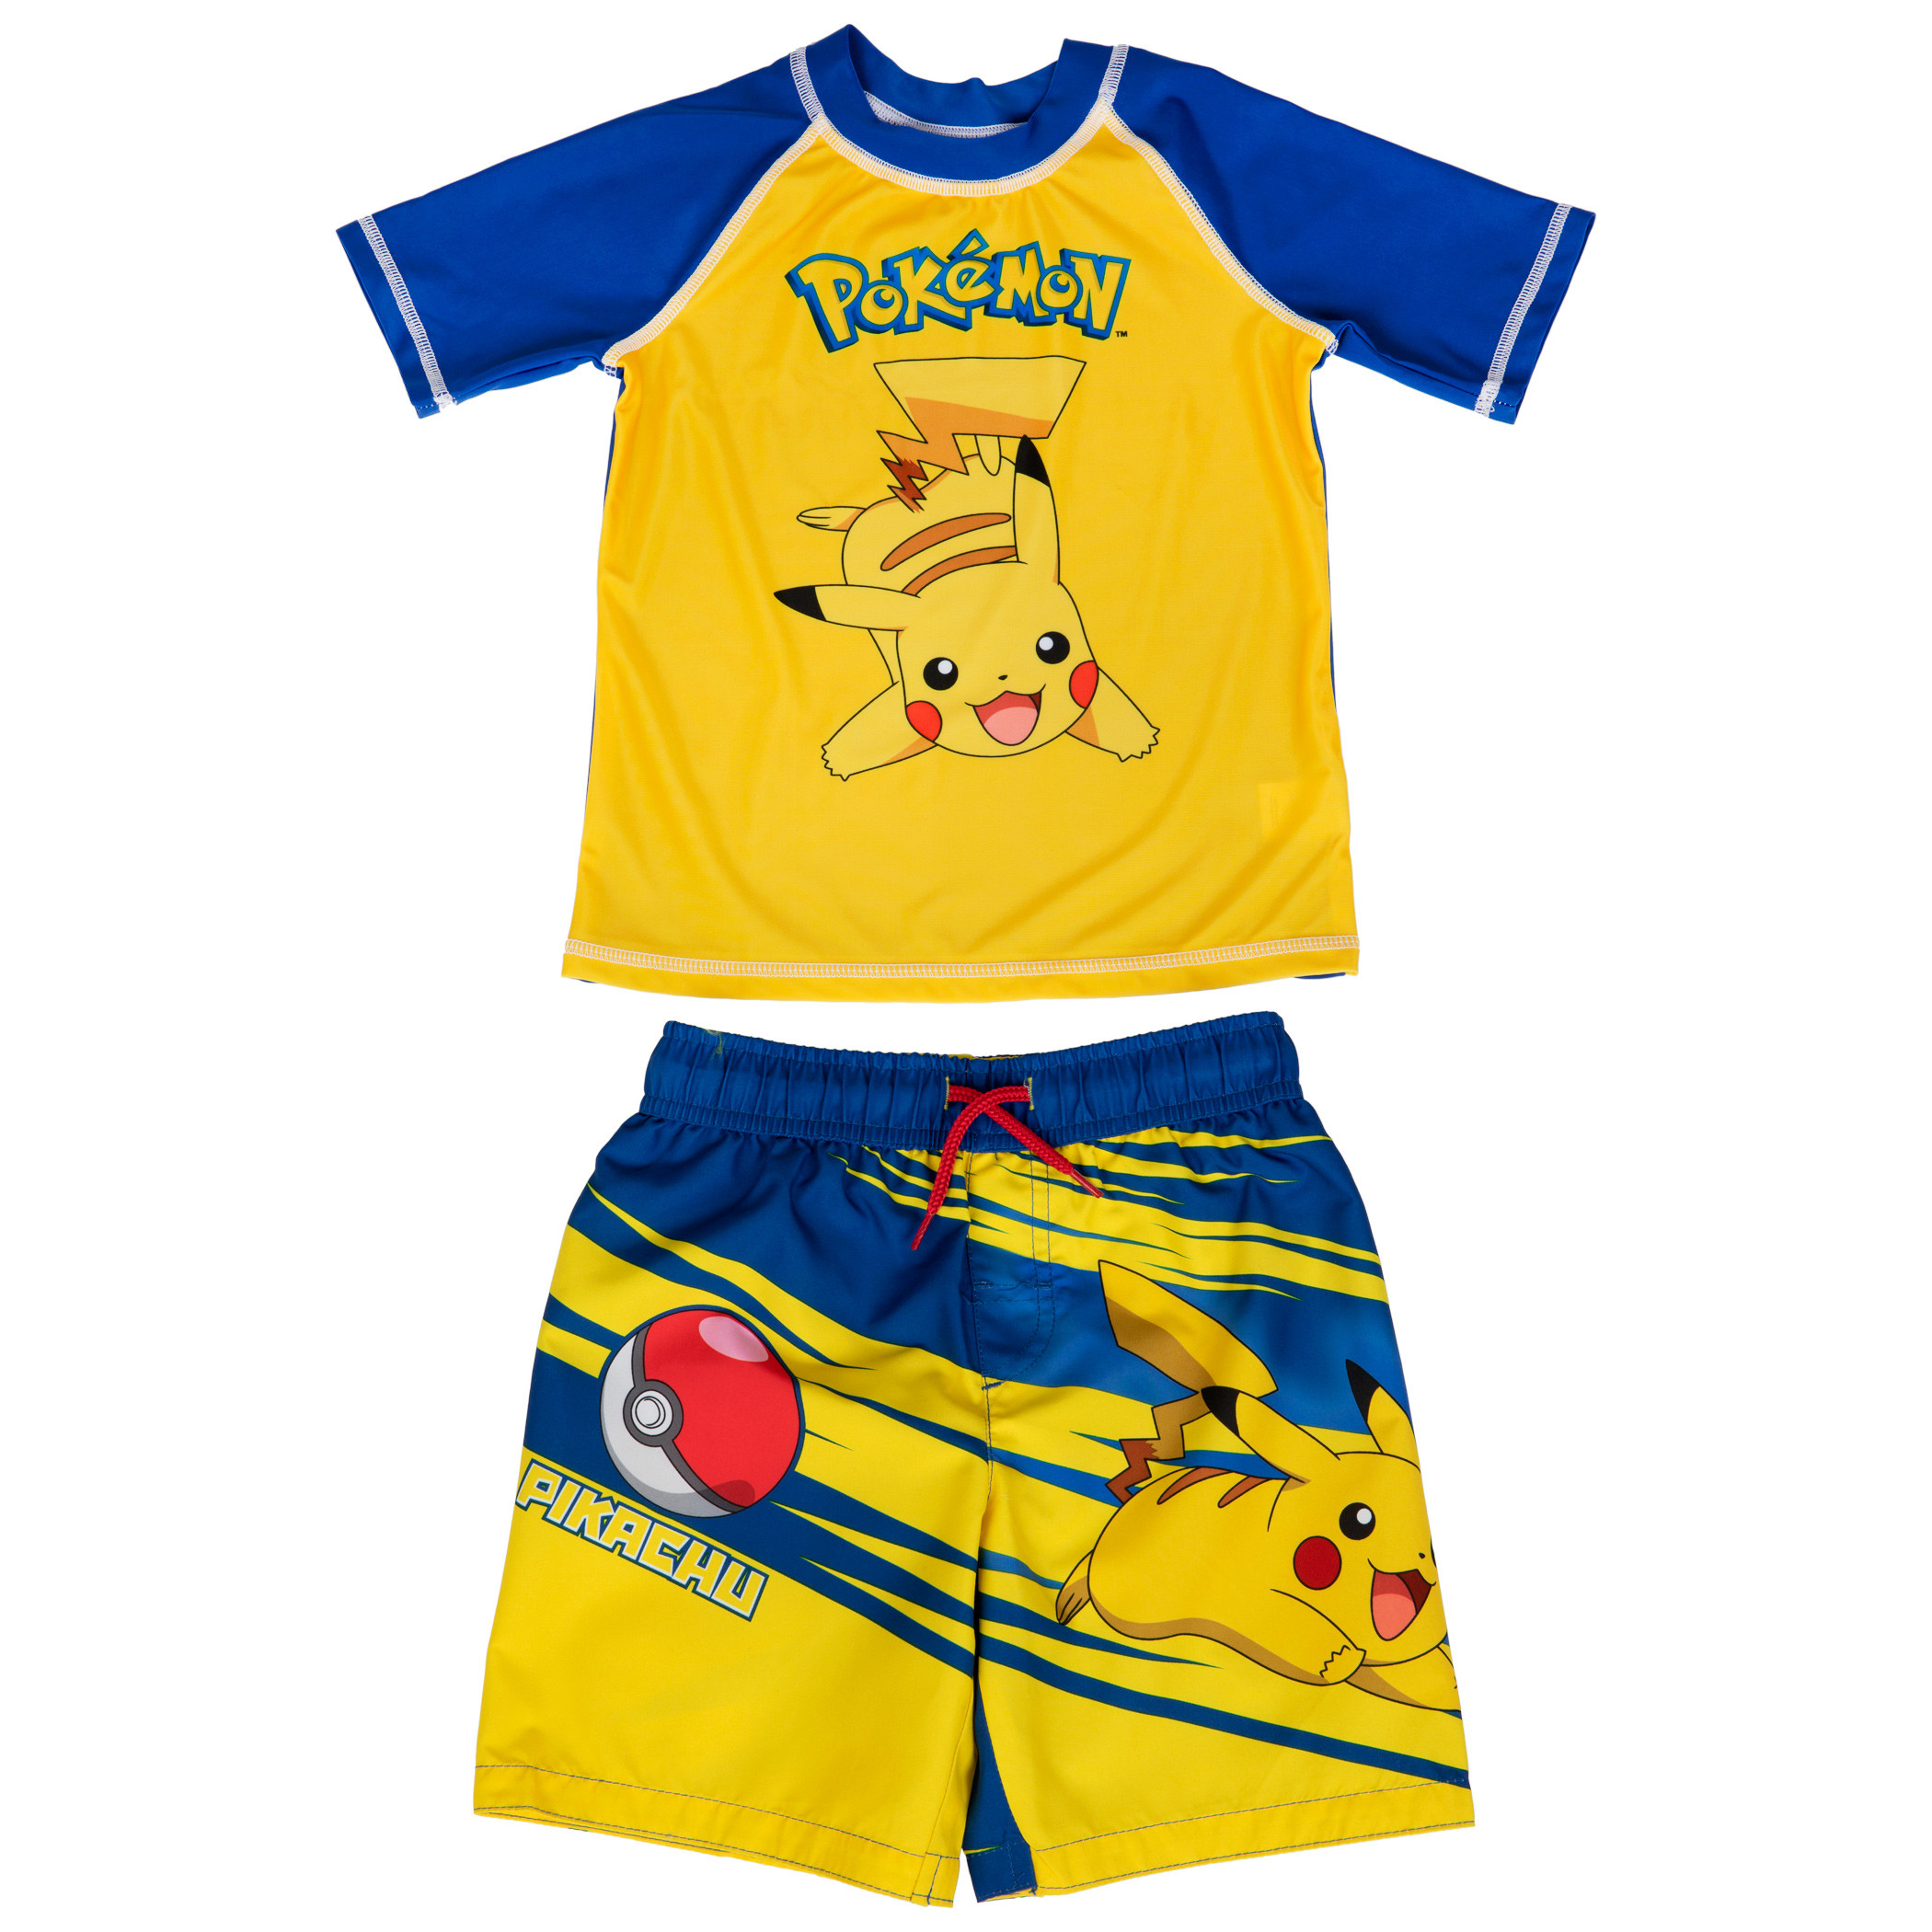 Pokemon Pikachu Character Youth Swim Trunks and Rashguard Set